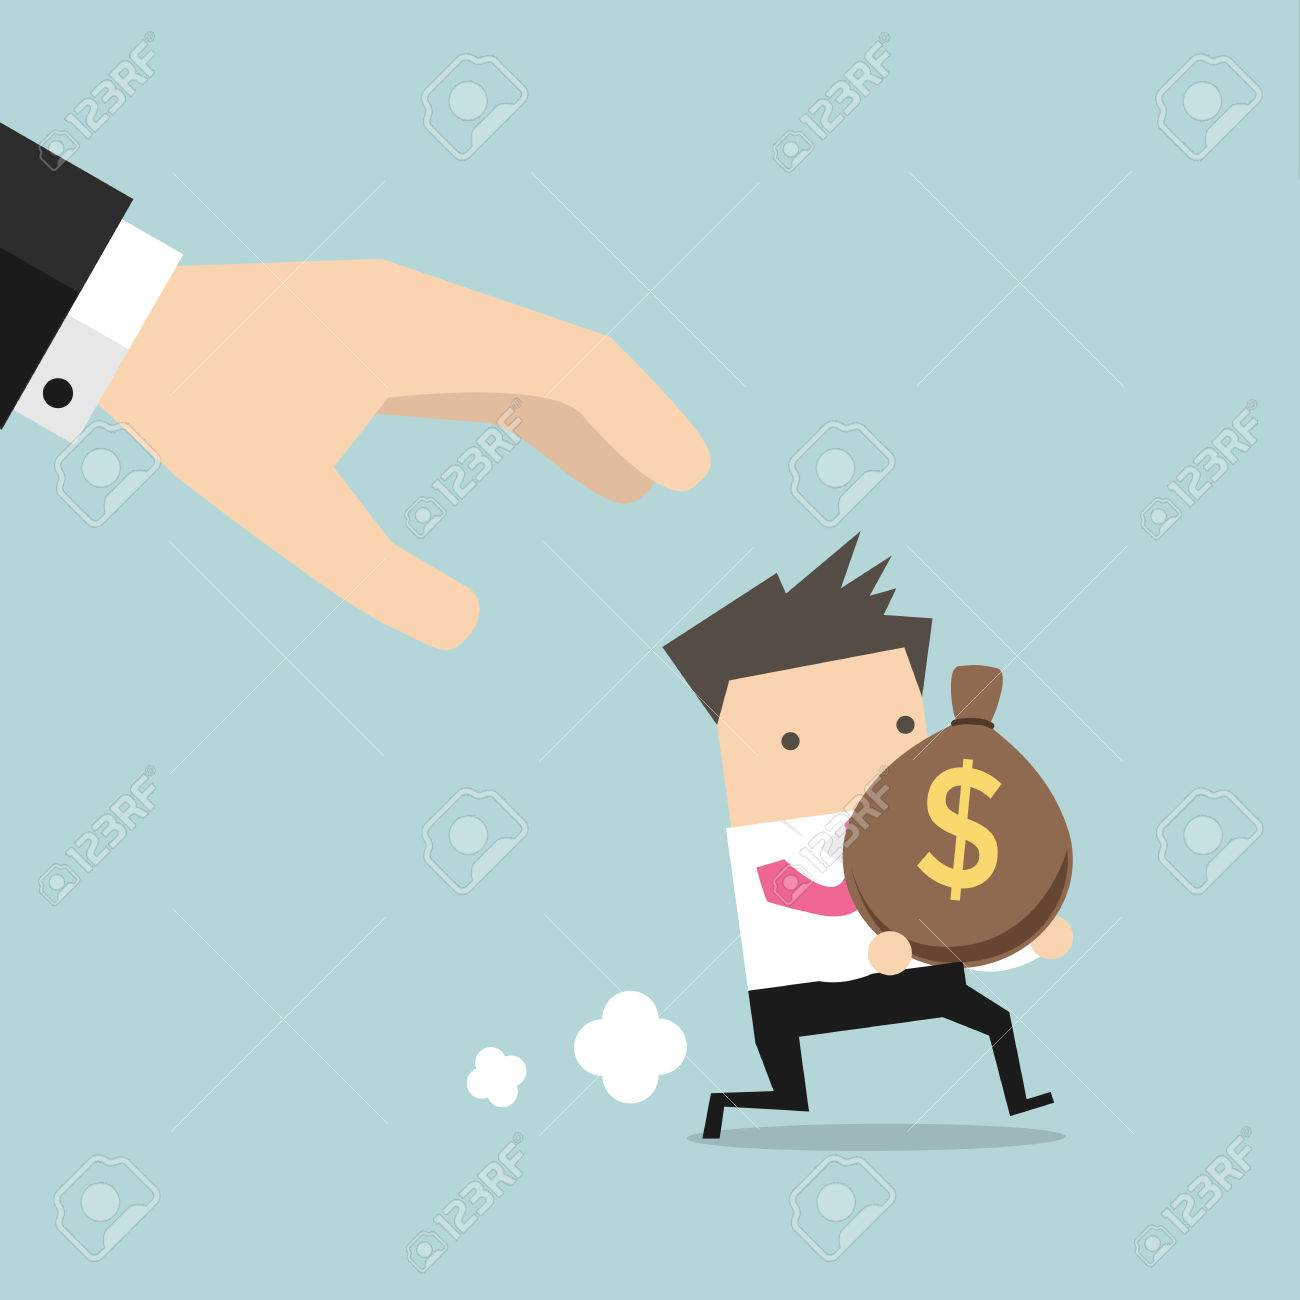 Clipart Picture of a Rolled Money Mascot Cartoon Character Running by  Toons4Biz #9961